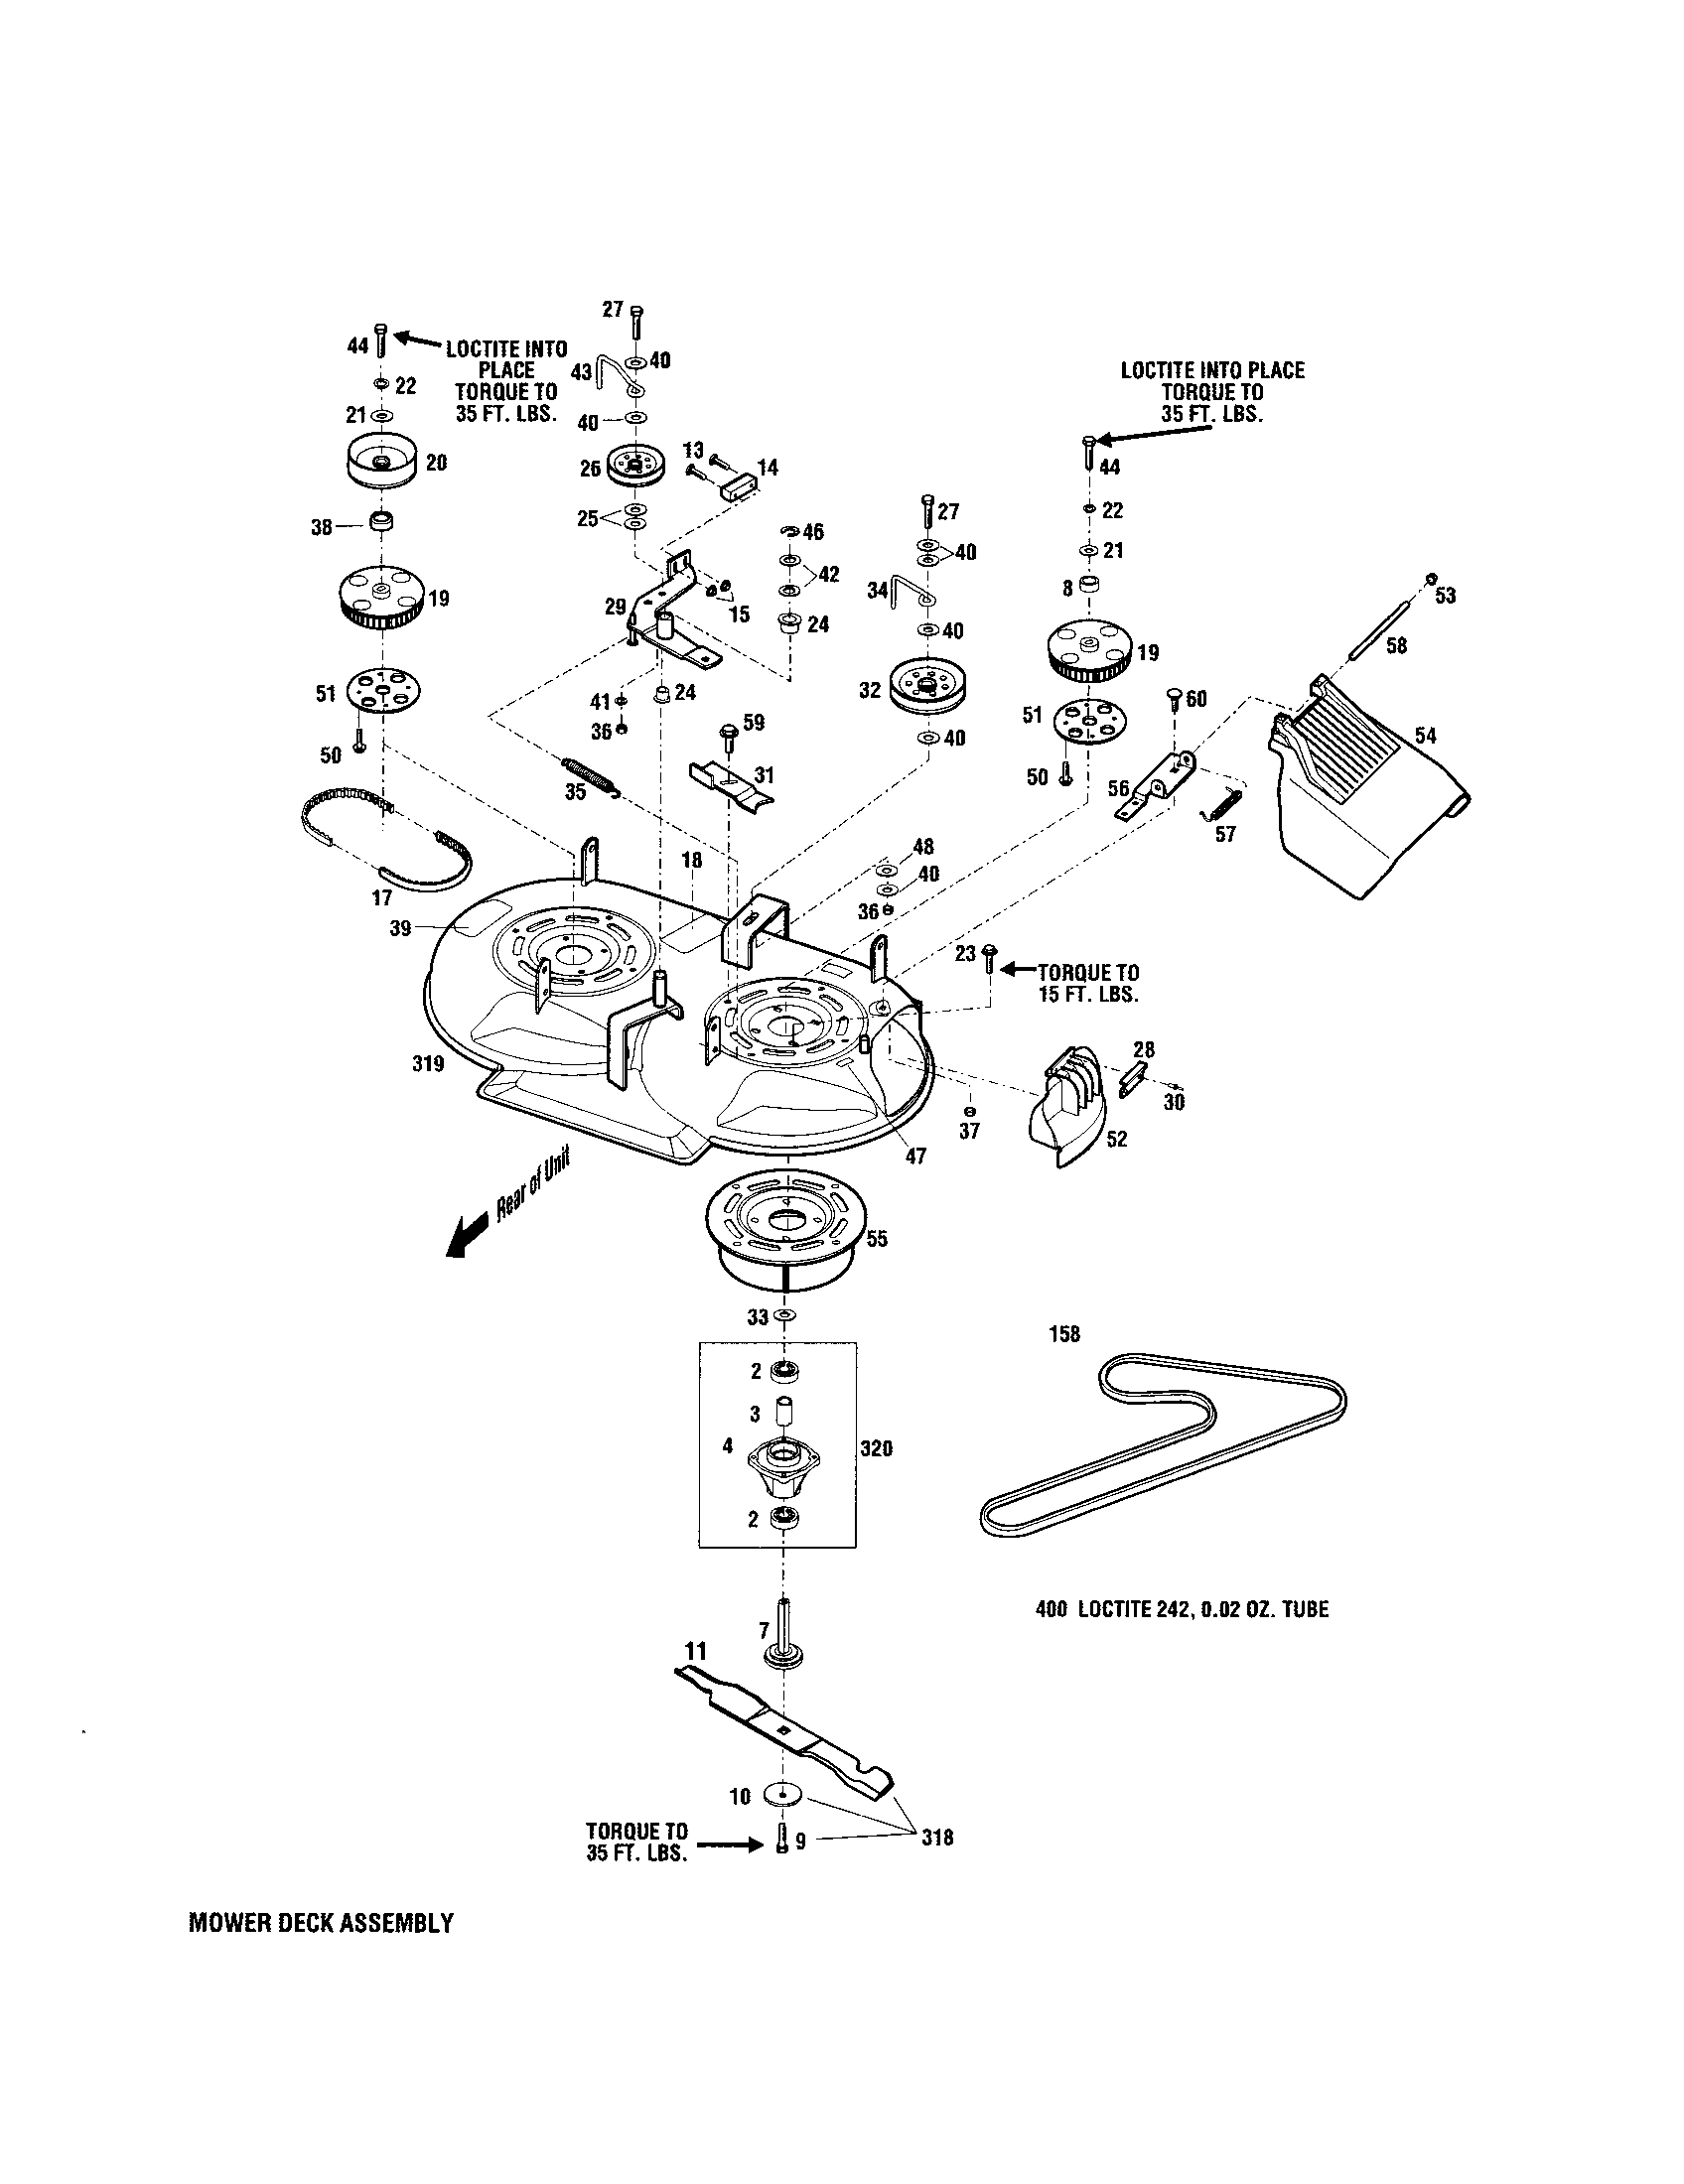 troy bilt mower parts diagrams wika pressure transmitter a 10 wiring diagram troybilt model 12b 753b063 walk behind lawnmower gas genuine